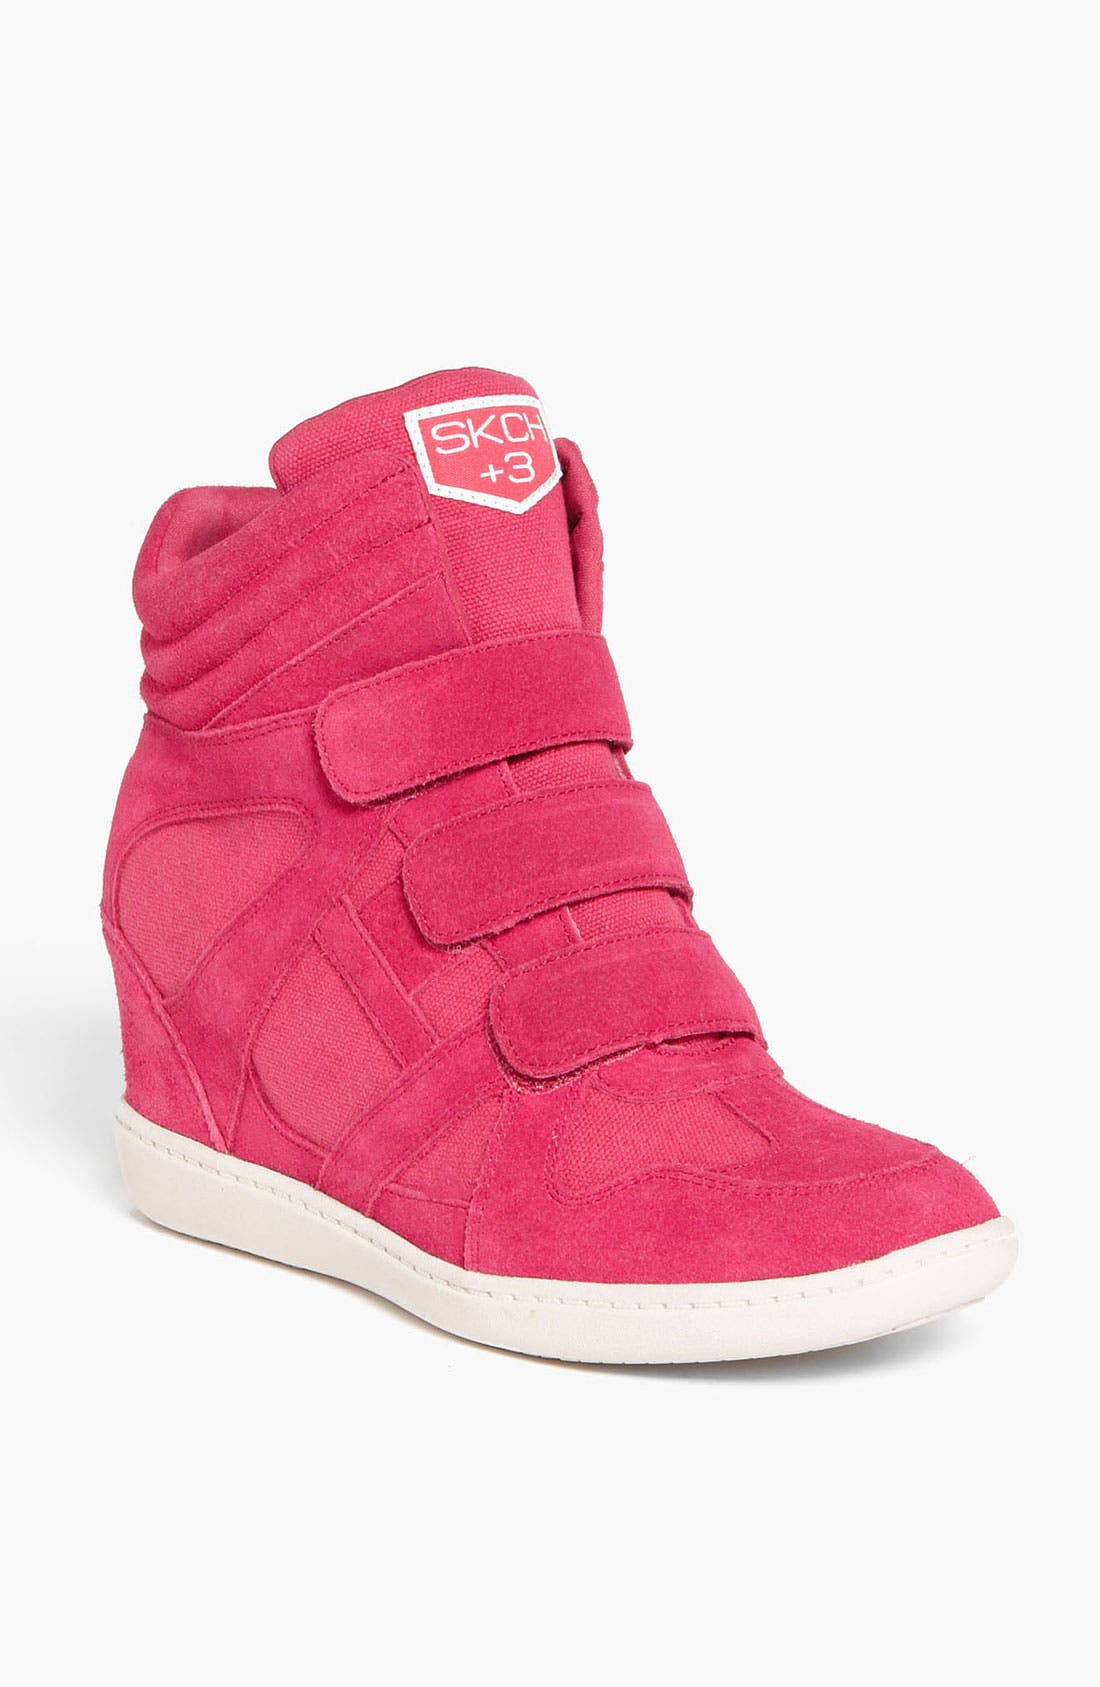 Alternate Image 1 Selected - SKECHERS 'Plus 3 Raise the Bar' Wedge Sneaker (Women)